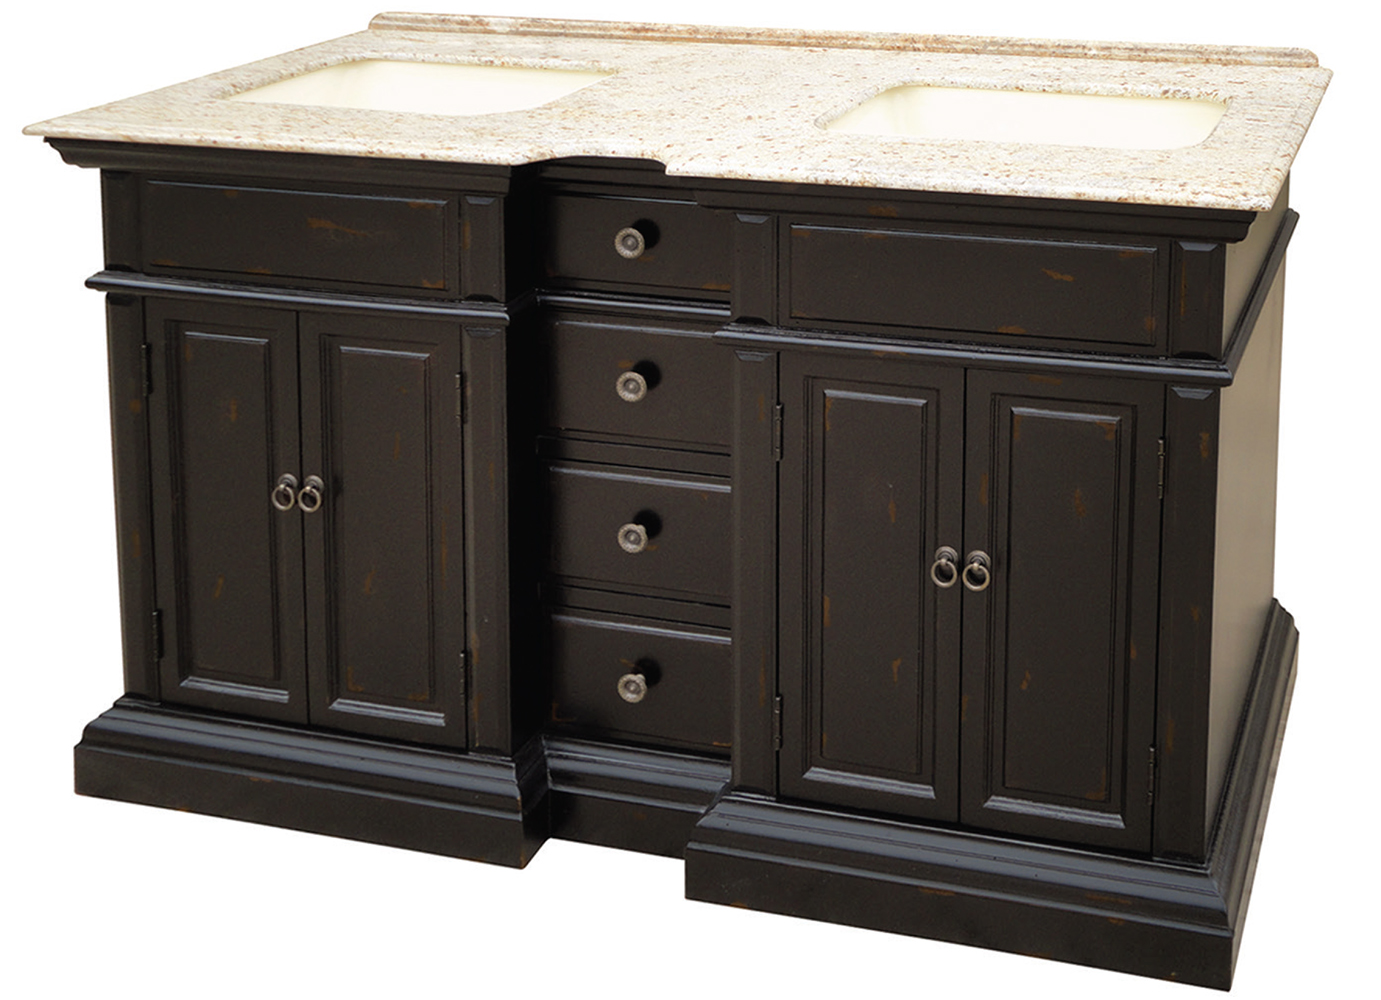 "Asheville 58"" Double Sink Black and White Granite, Distressed Black Finish"